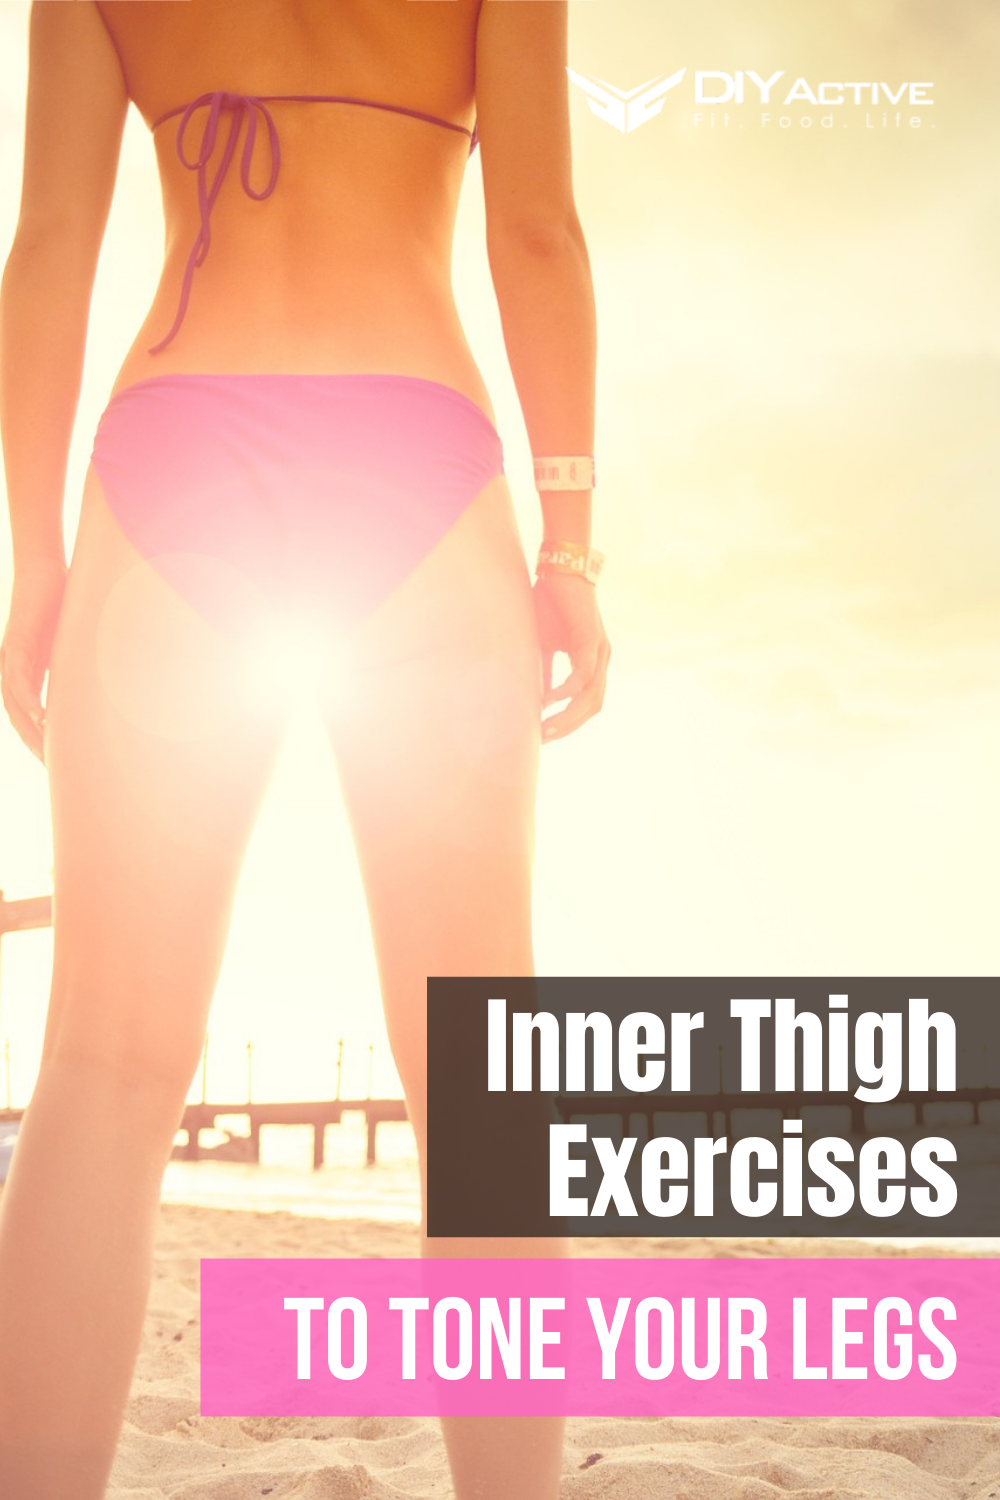 Inner Thigh Exercises to Tone Your Legs